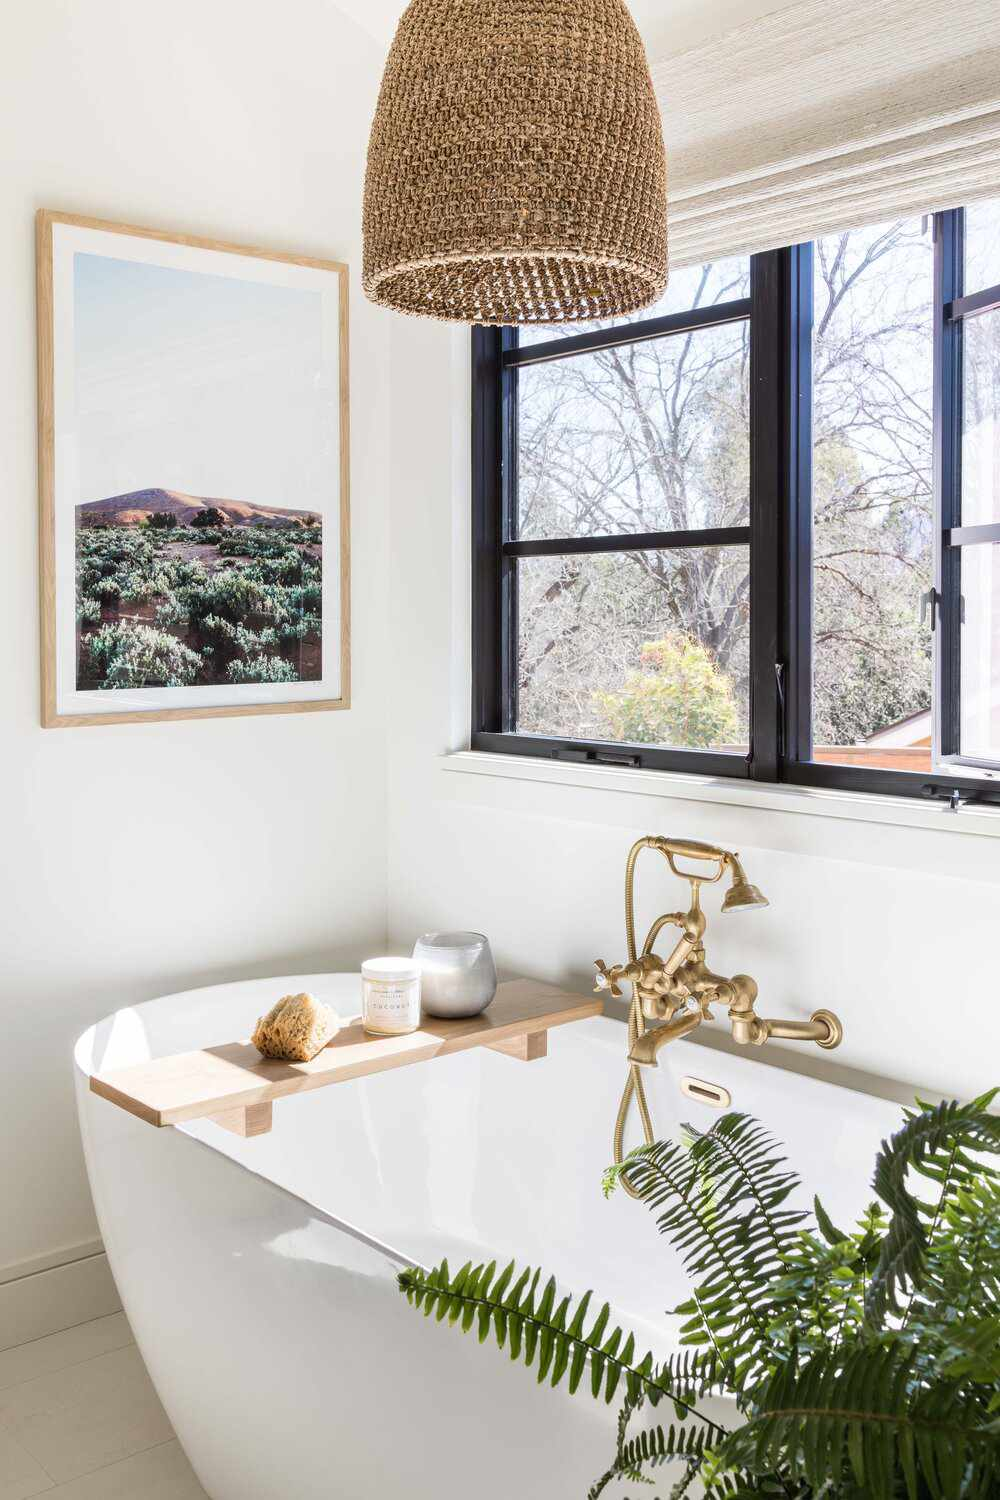 A freestanding bathtub topped with a bath tray